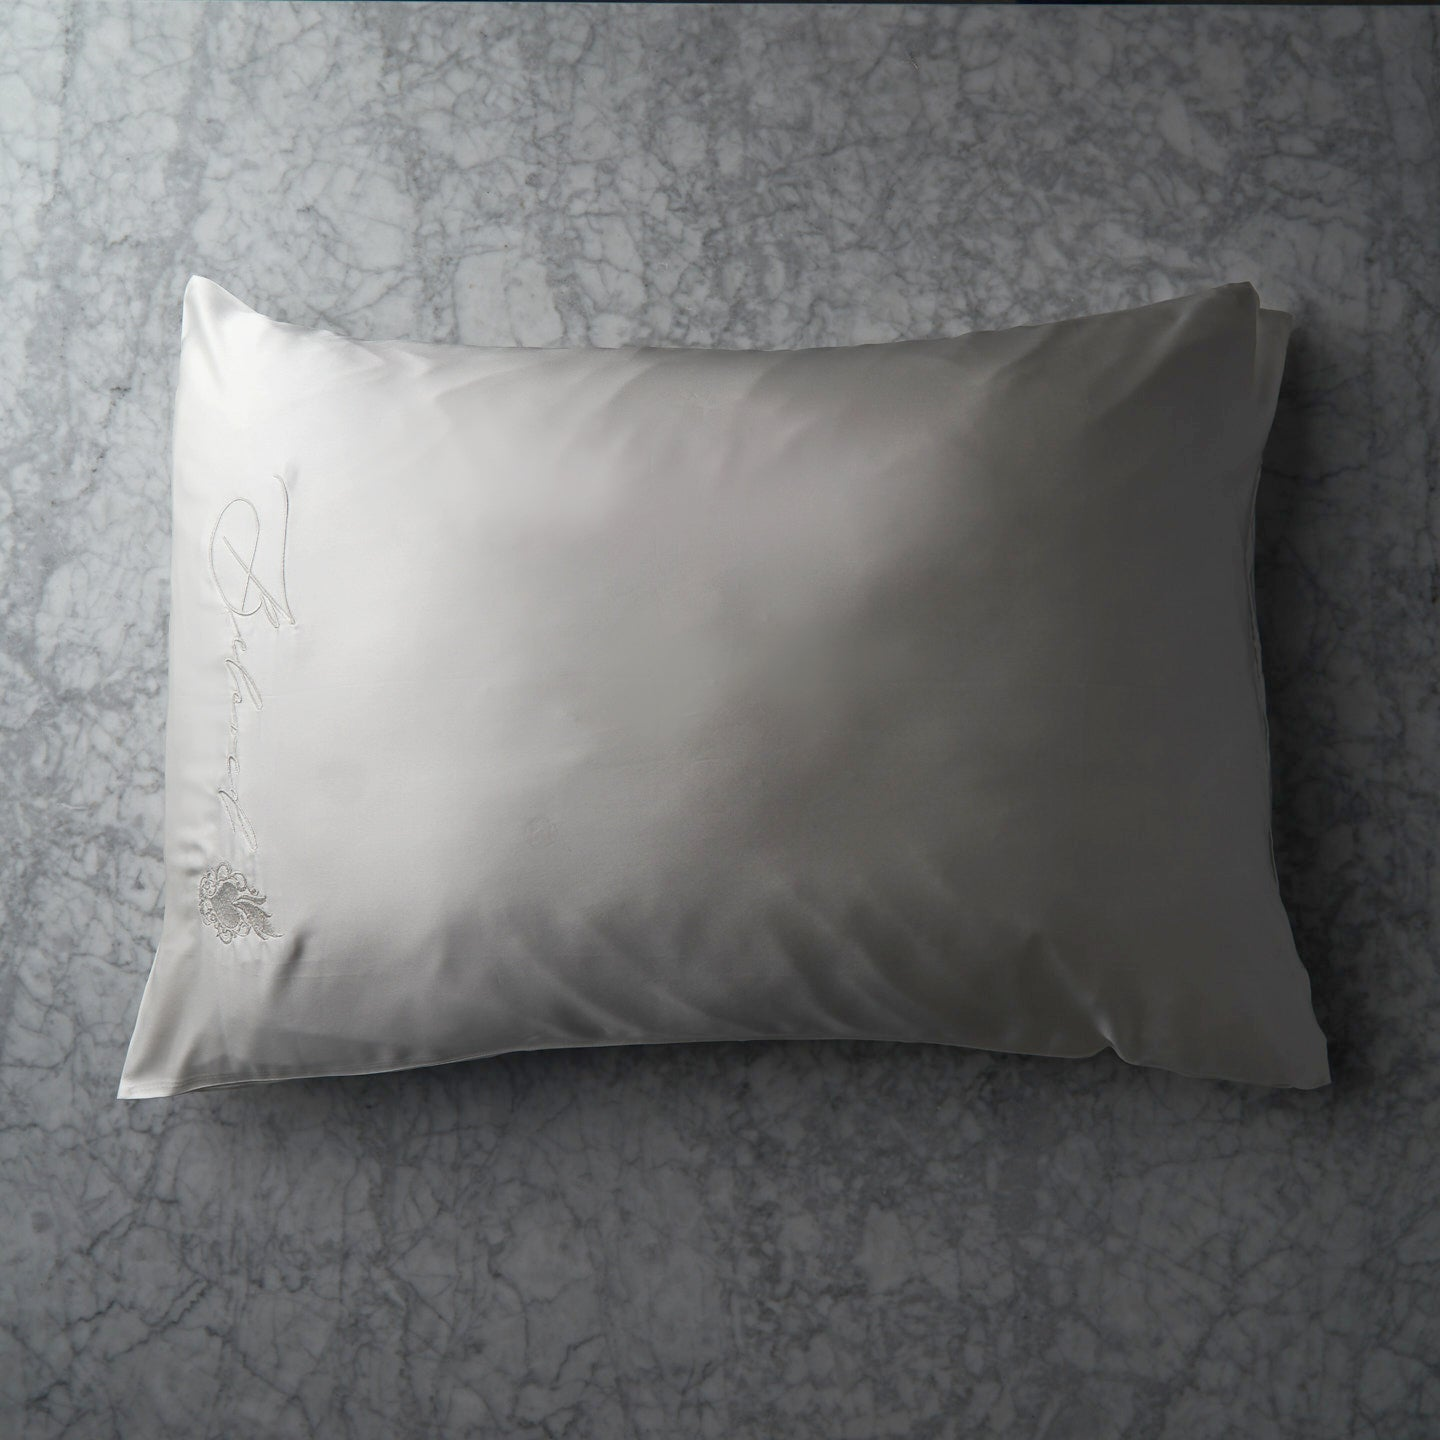 Beloved Mulberry Silk Pillowcase - White